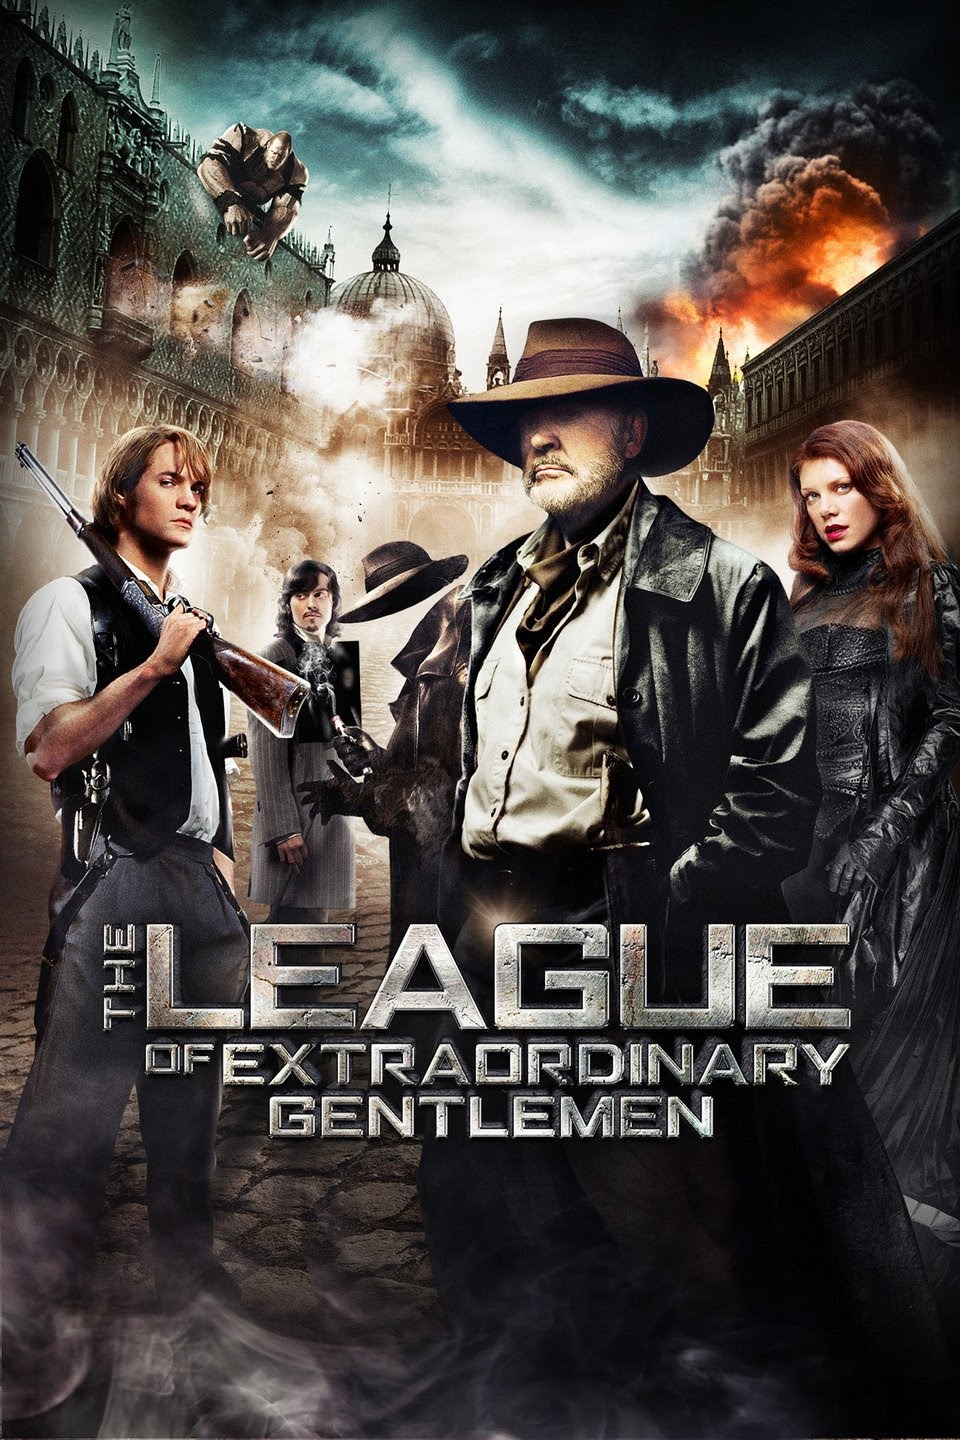 The film's aesthetic is heavily inspired by Steampunk designs